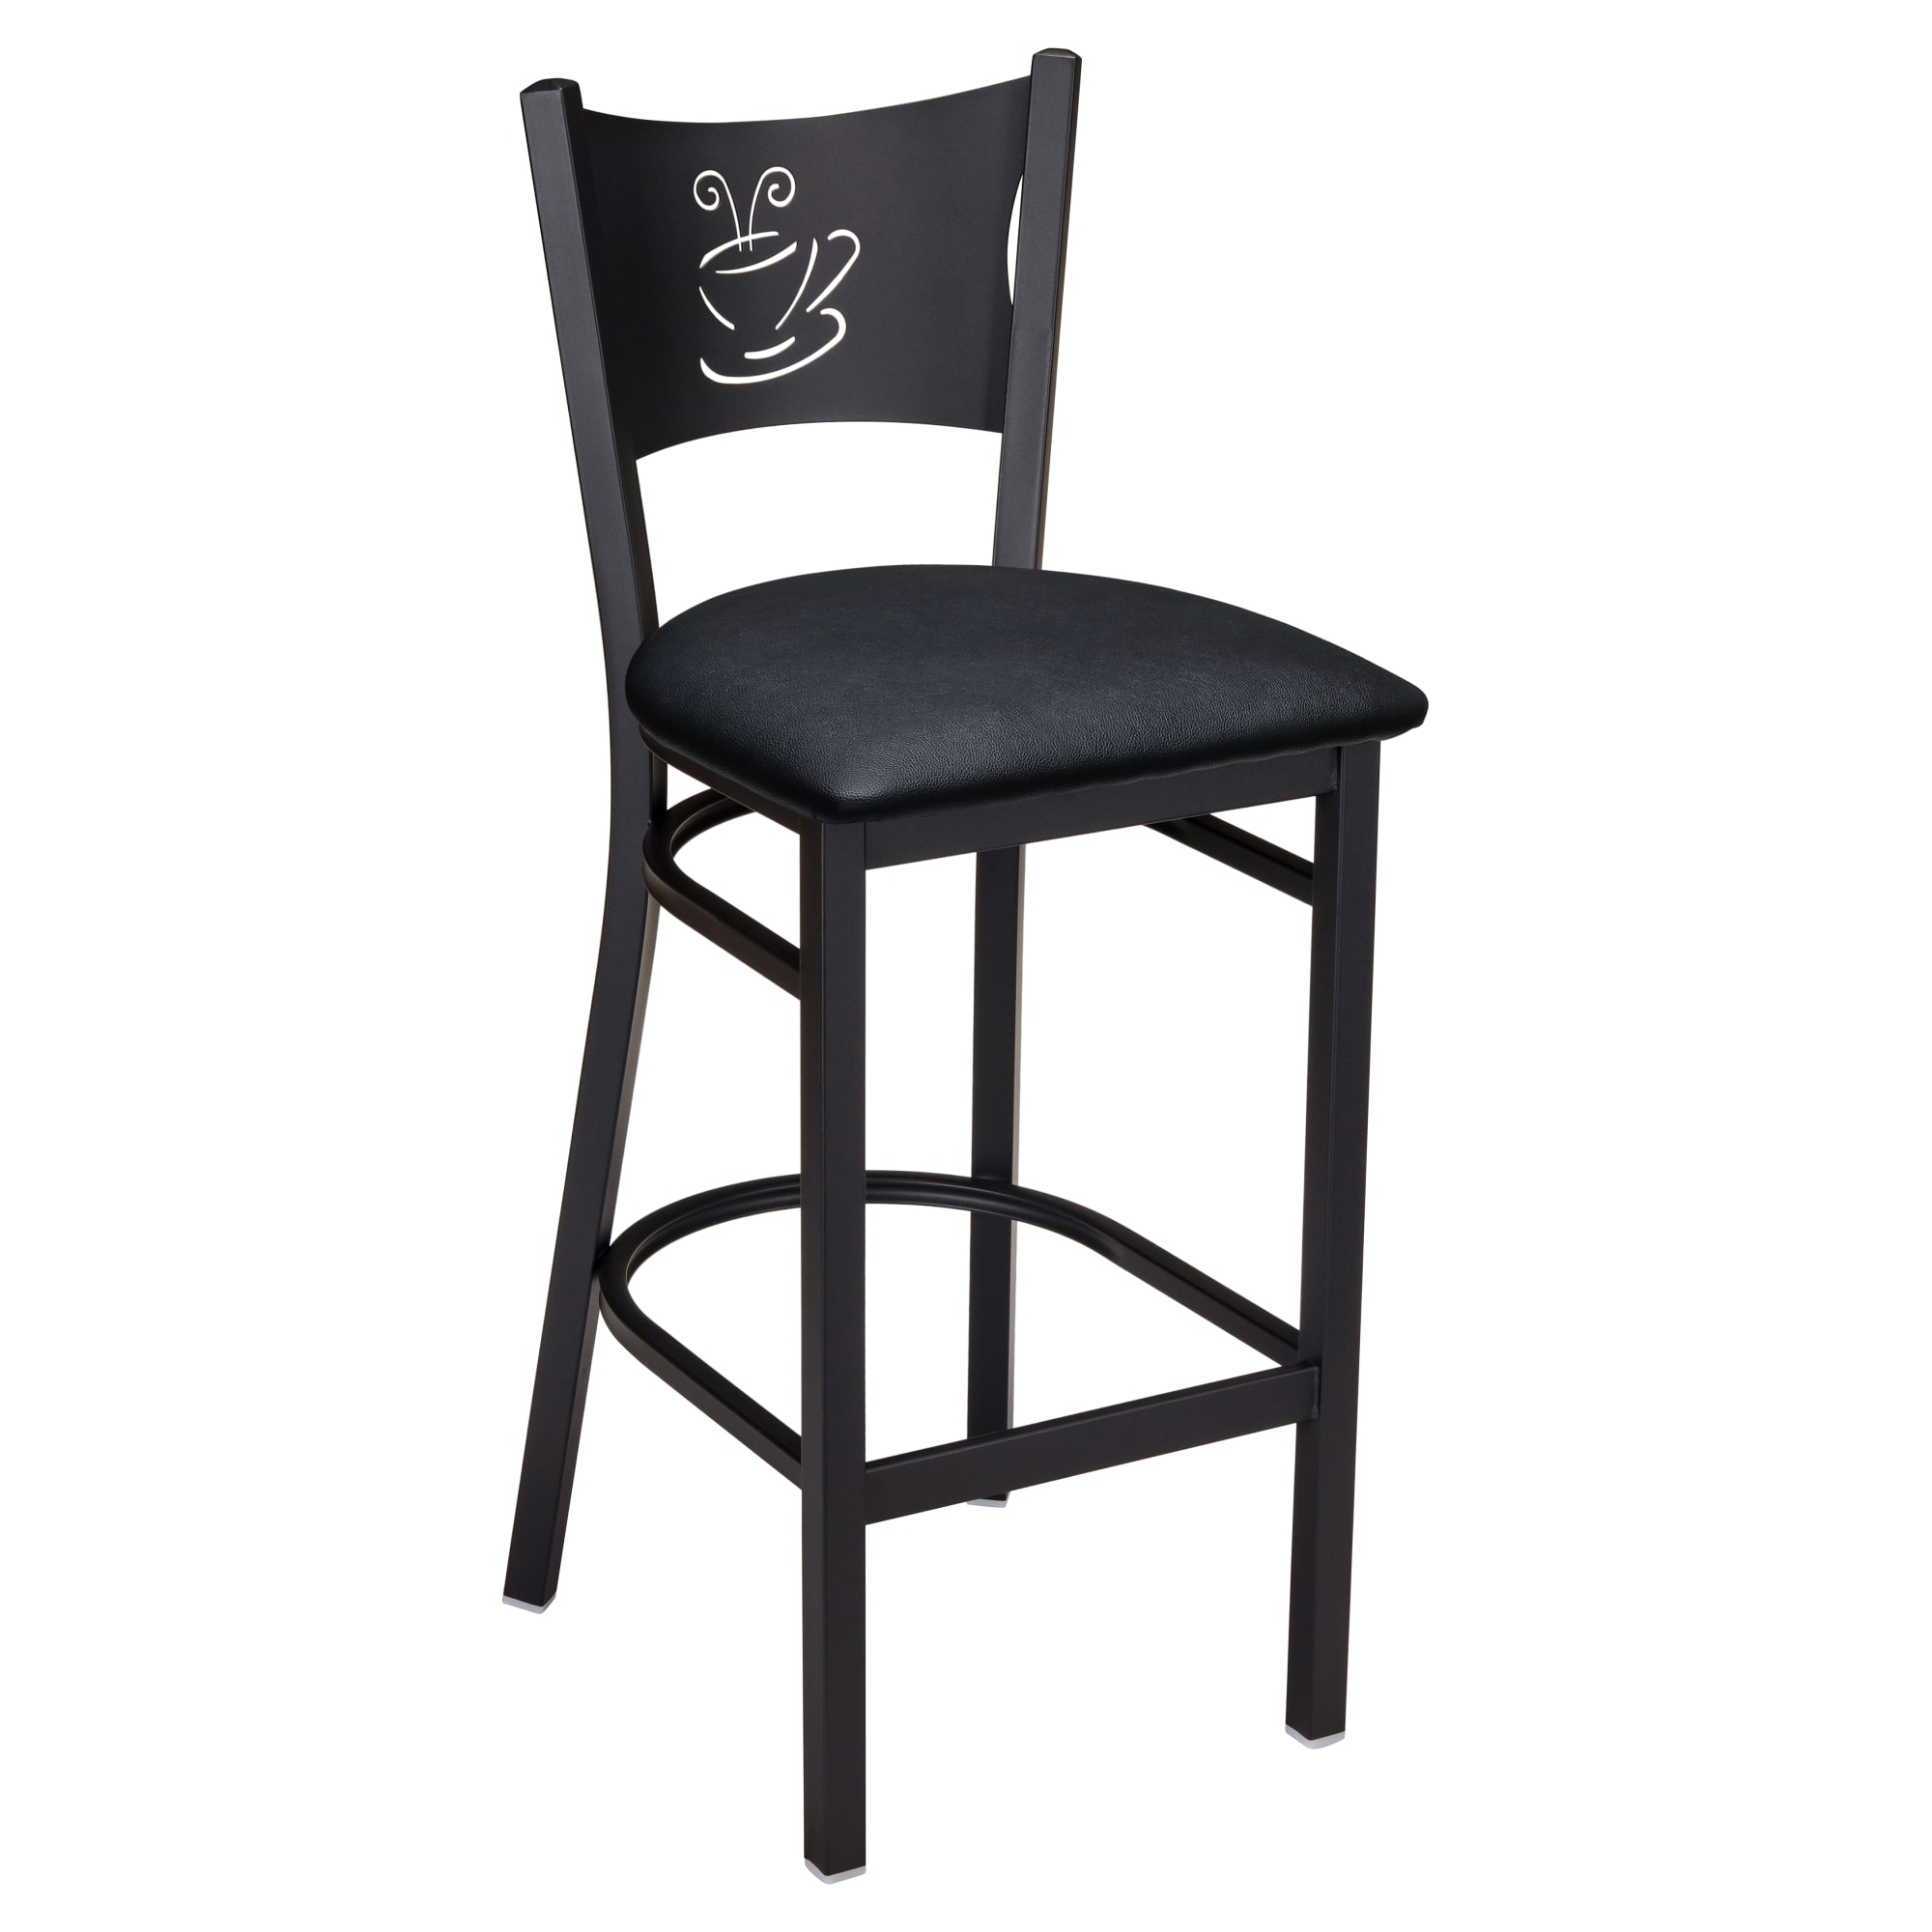 Metal Cafe Bar Stool with Metal Cafe Bar Stool